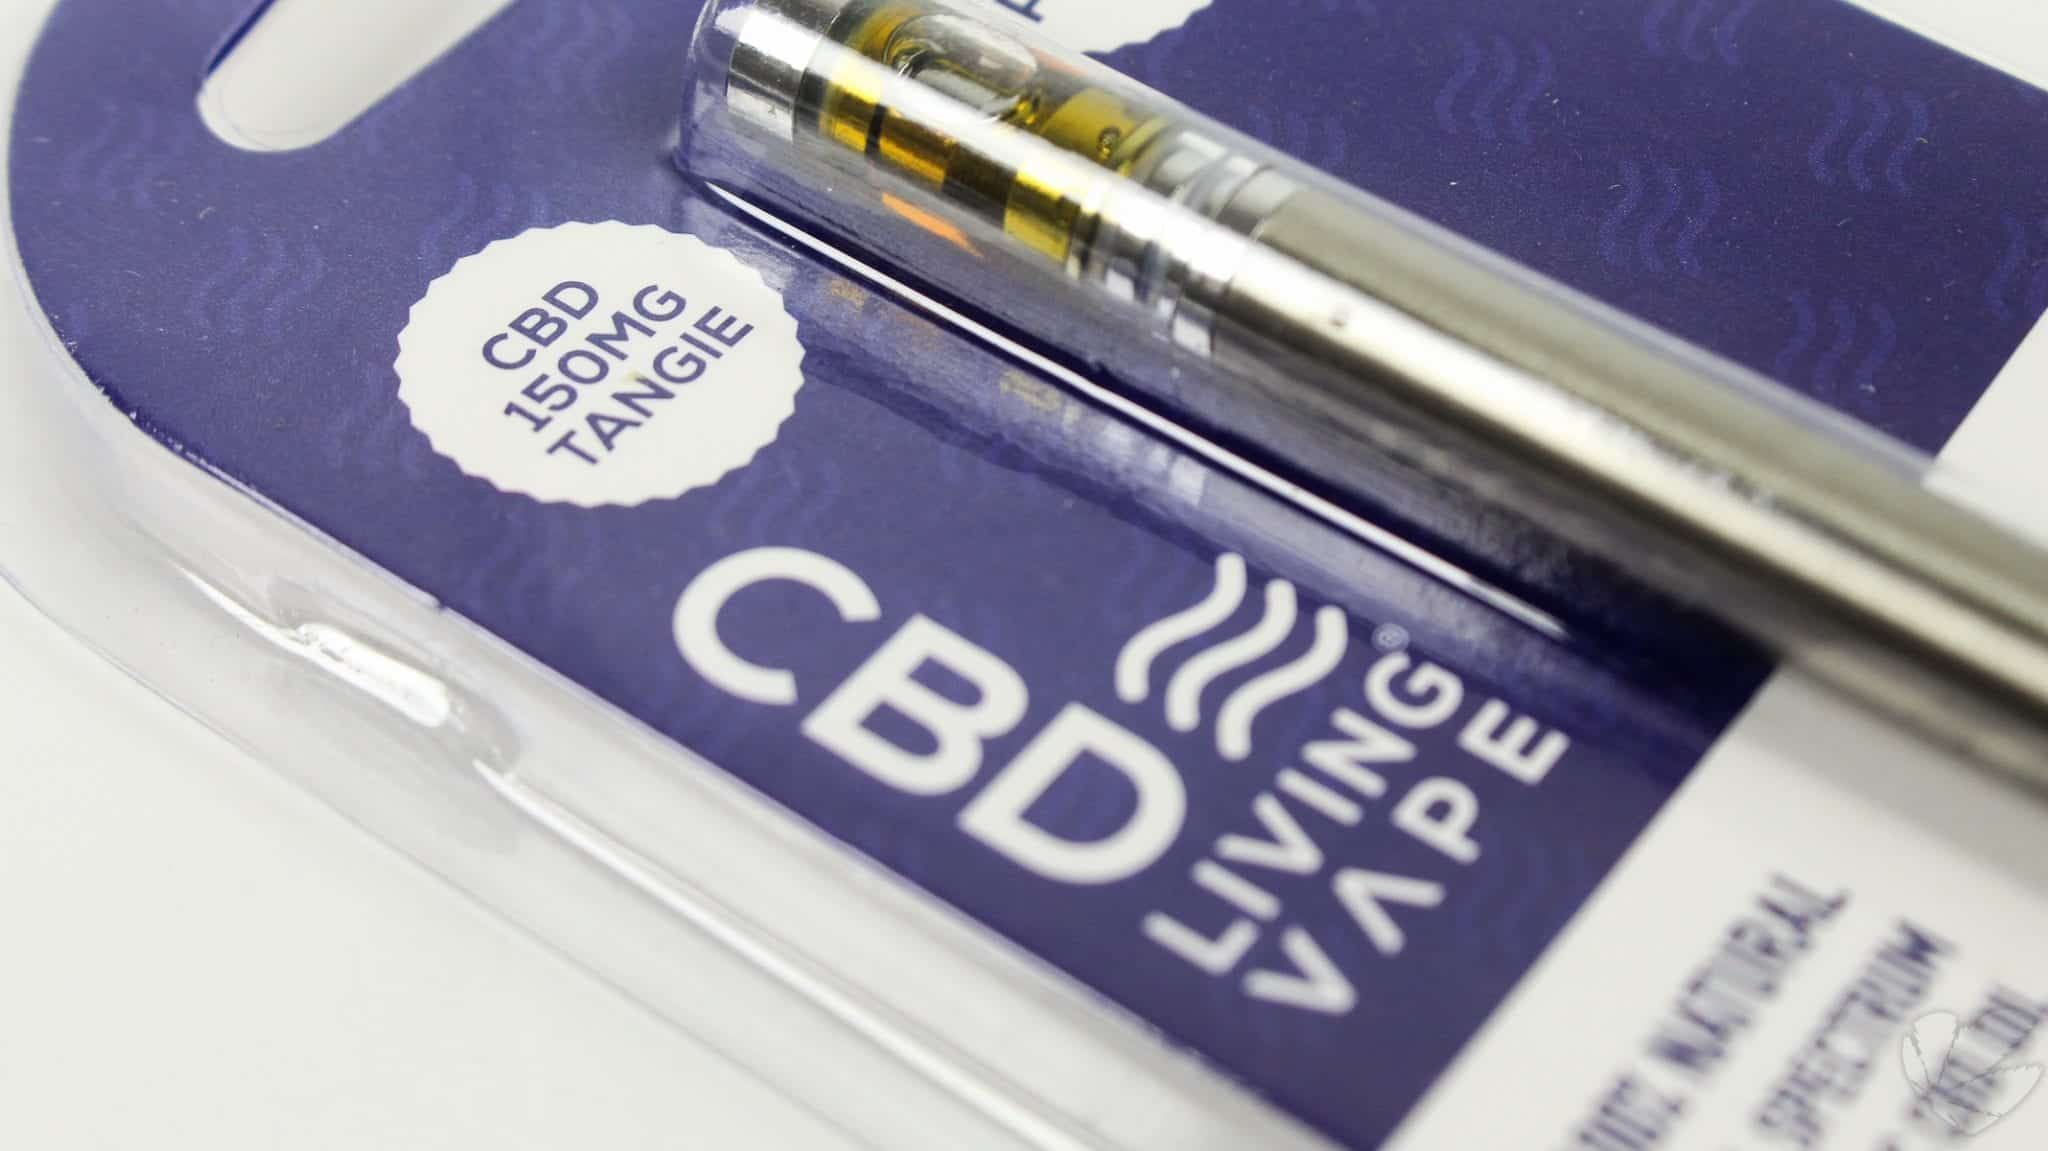 Sample of CBD Living Vape; image courtesy of WeedPornDaily.com, via Flickr, CC BY 2.0, no changes made.